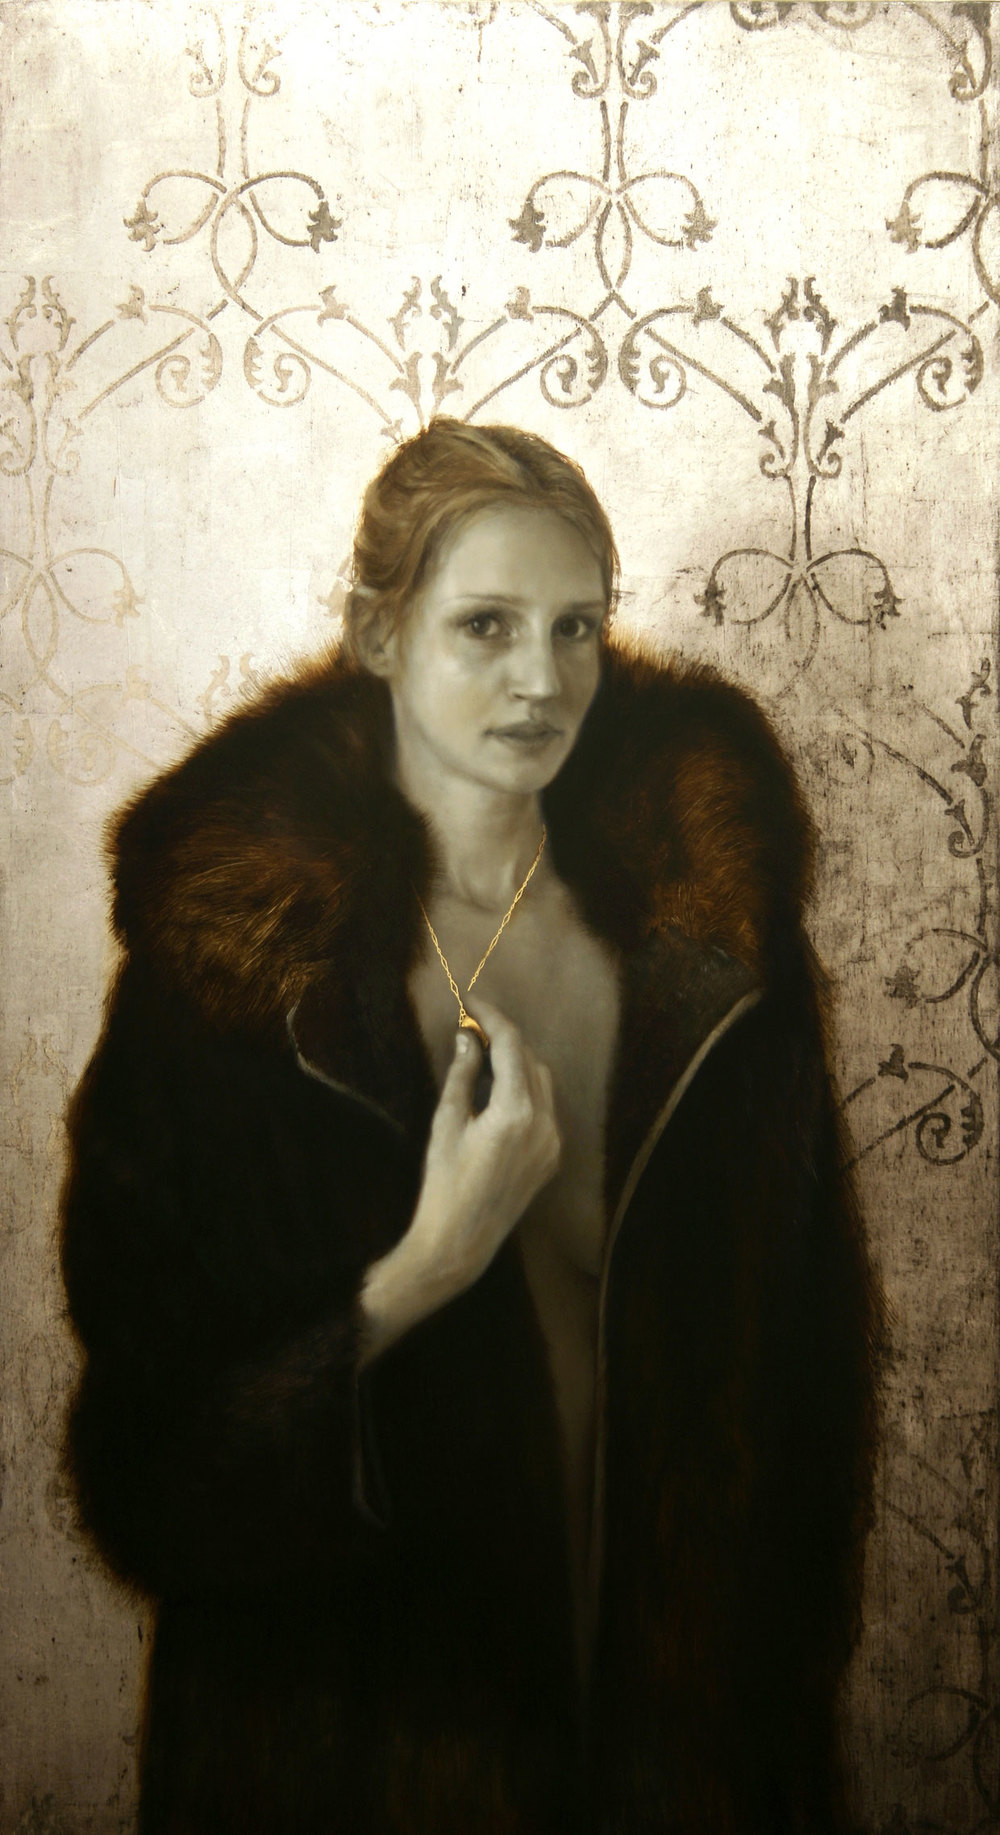 Locket and The Fur Coat.   44 x 24 inches.  Oil, gold and silver leaf on linen.  Private collection